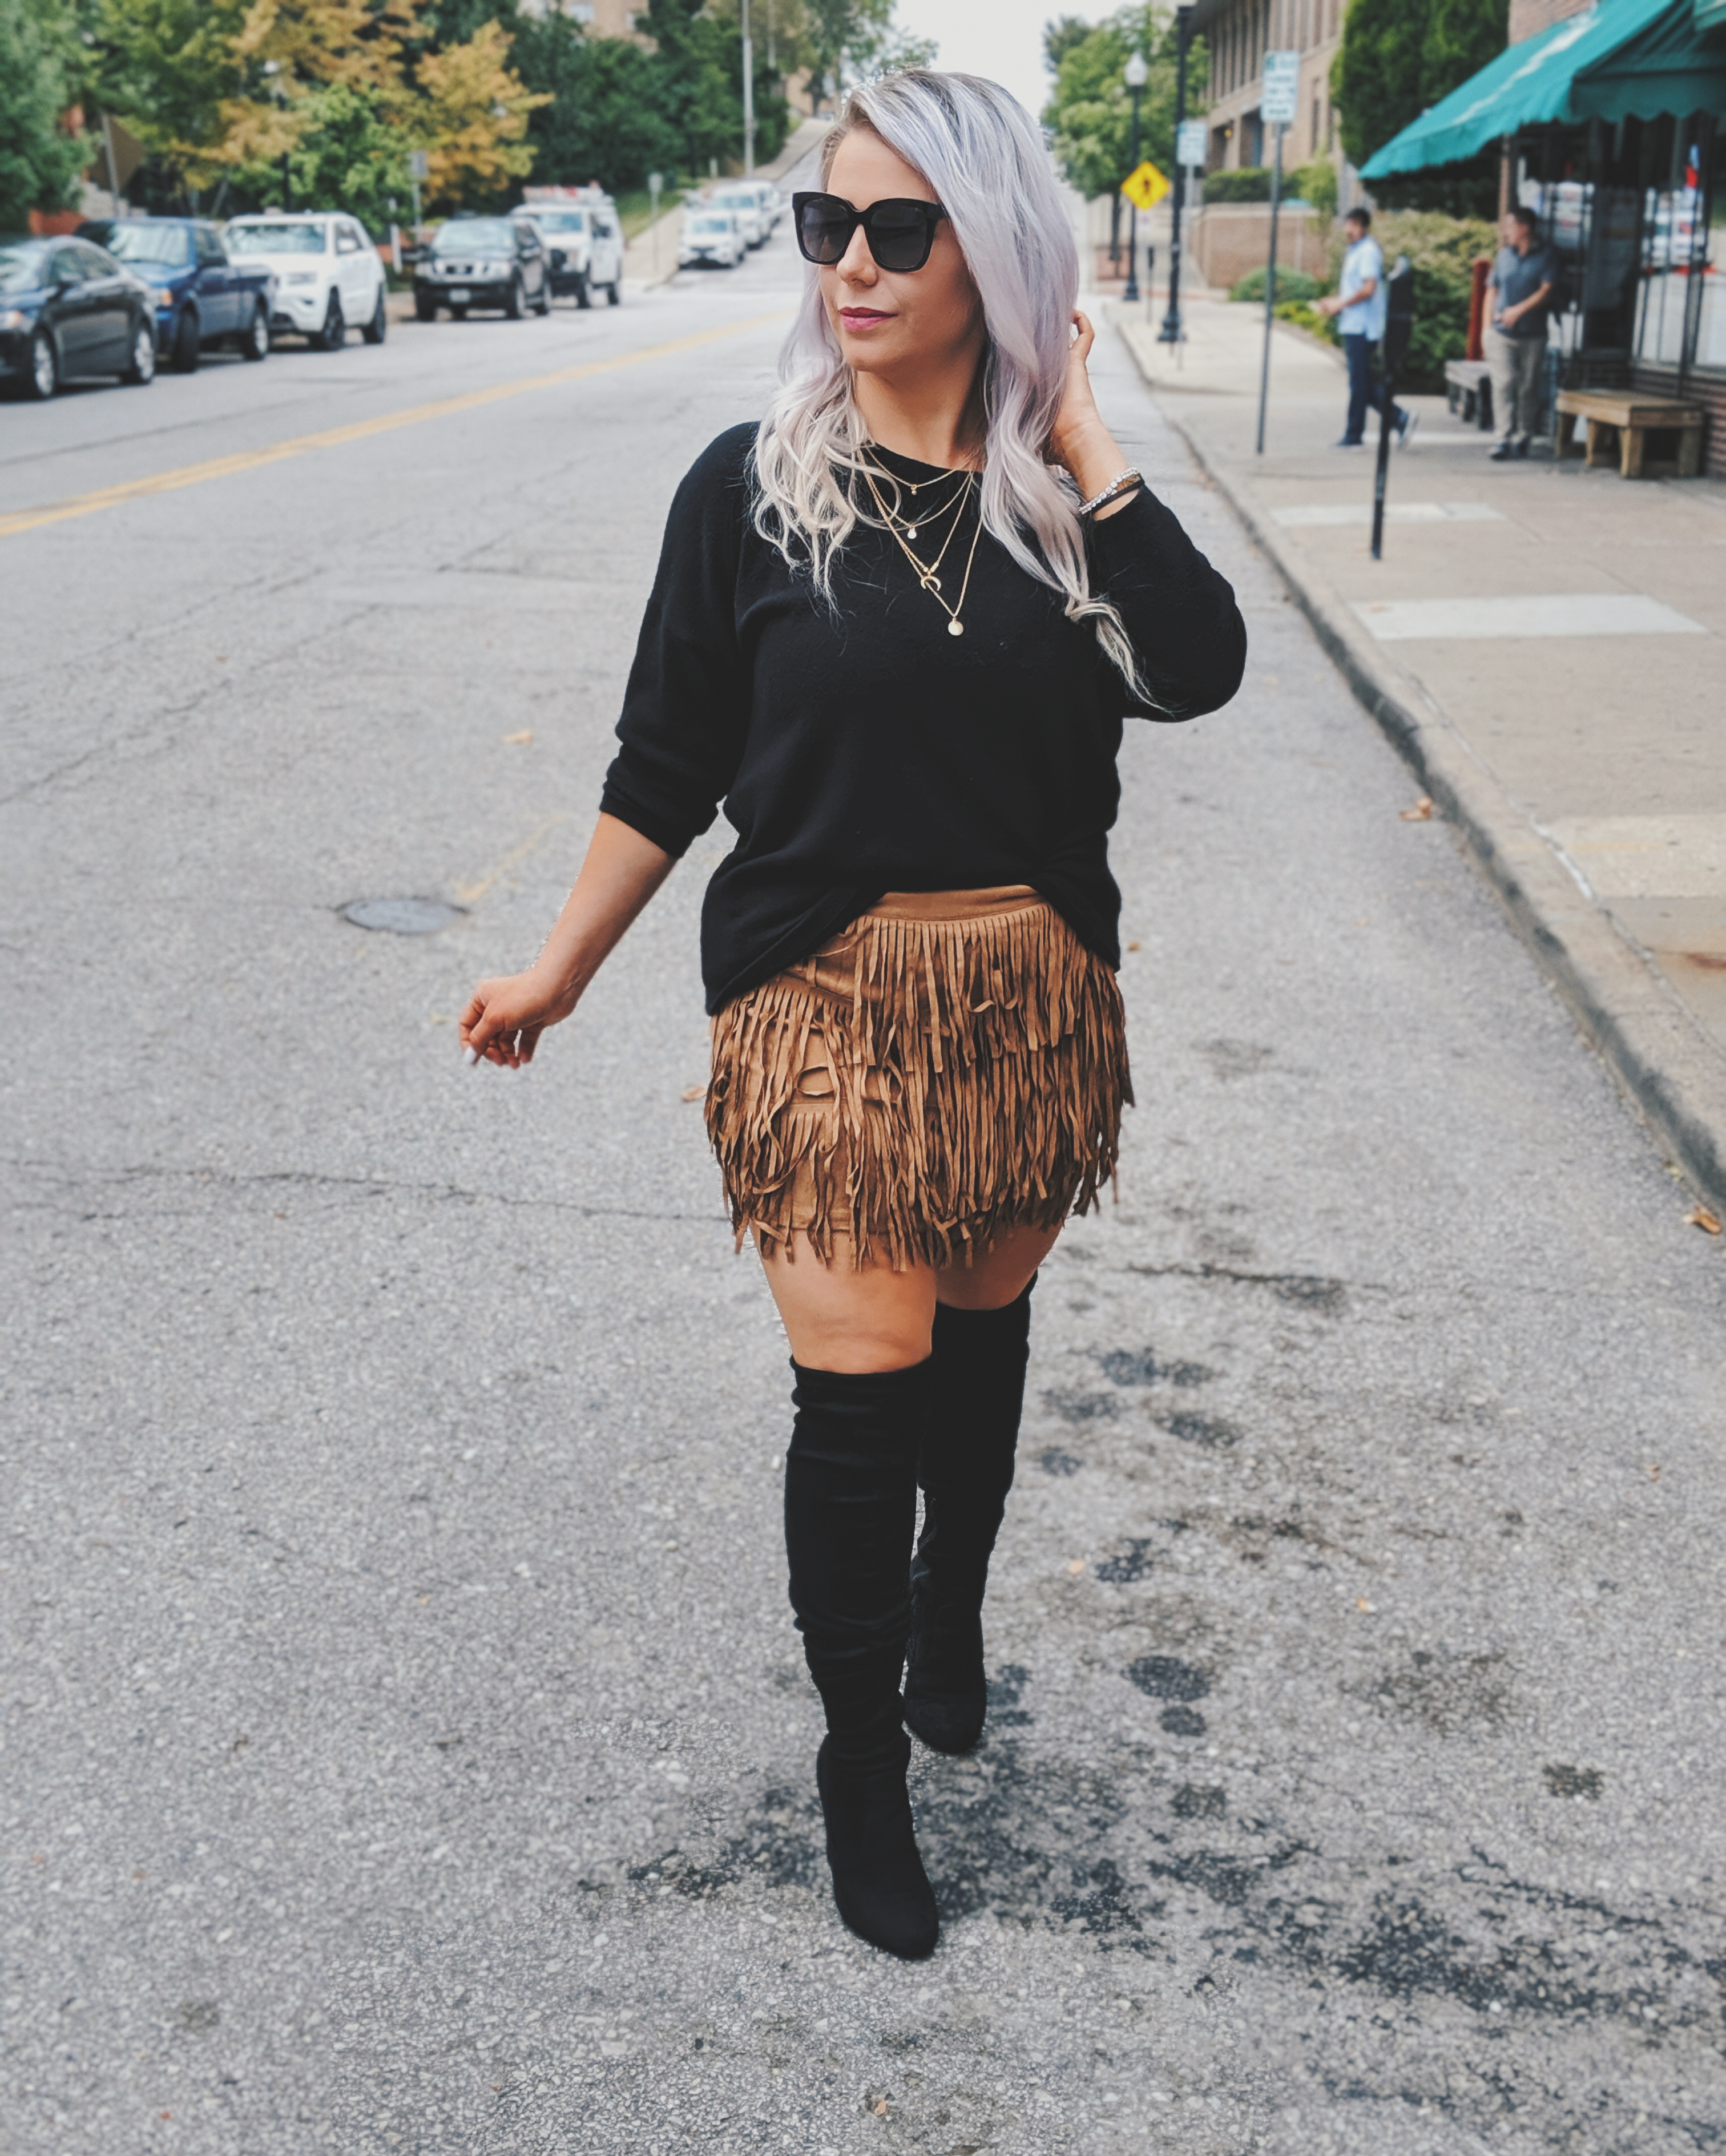 Fall outfit goals :) I NEED this fringe skirt! Fashion blogger Tricia Nibarger showcases fringe skirt outfit ideas for your fall outfits. Here's how to wear a fringe skirt in the fall and winter! This skirt is just $17 and a perfect addition to your fall 2019 wardrobe. #shein #sheingals #falloutfits